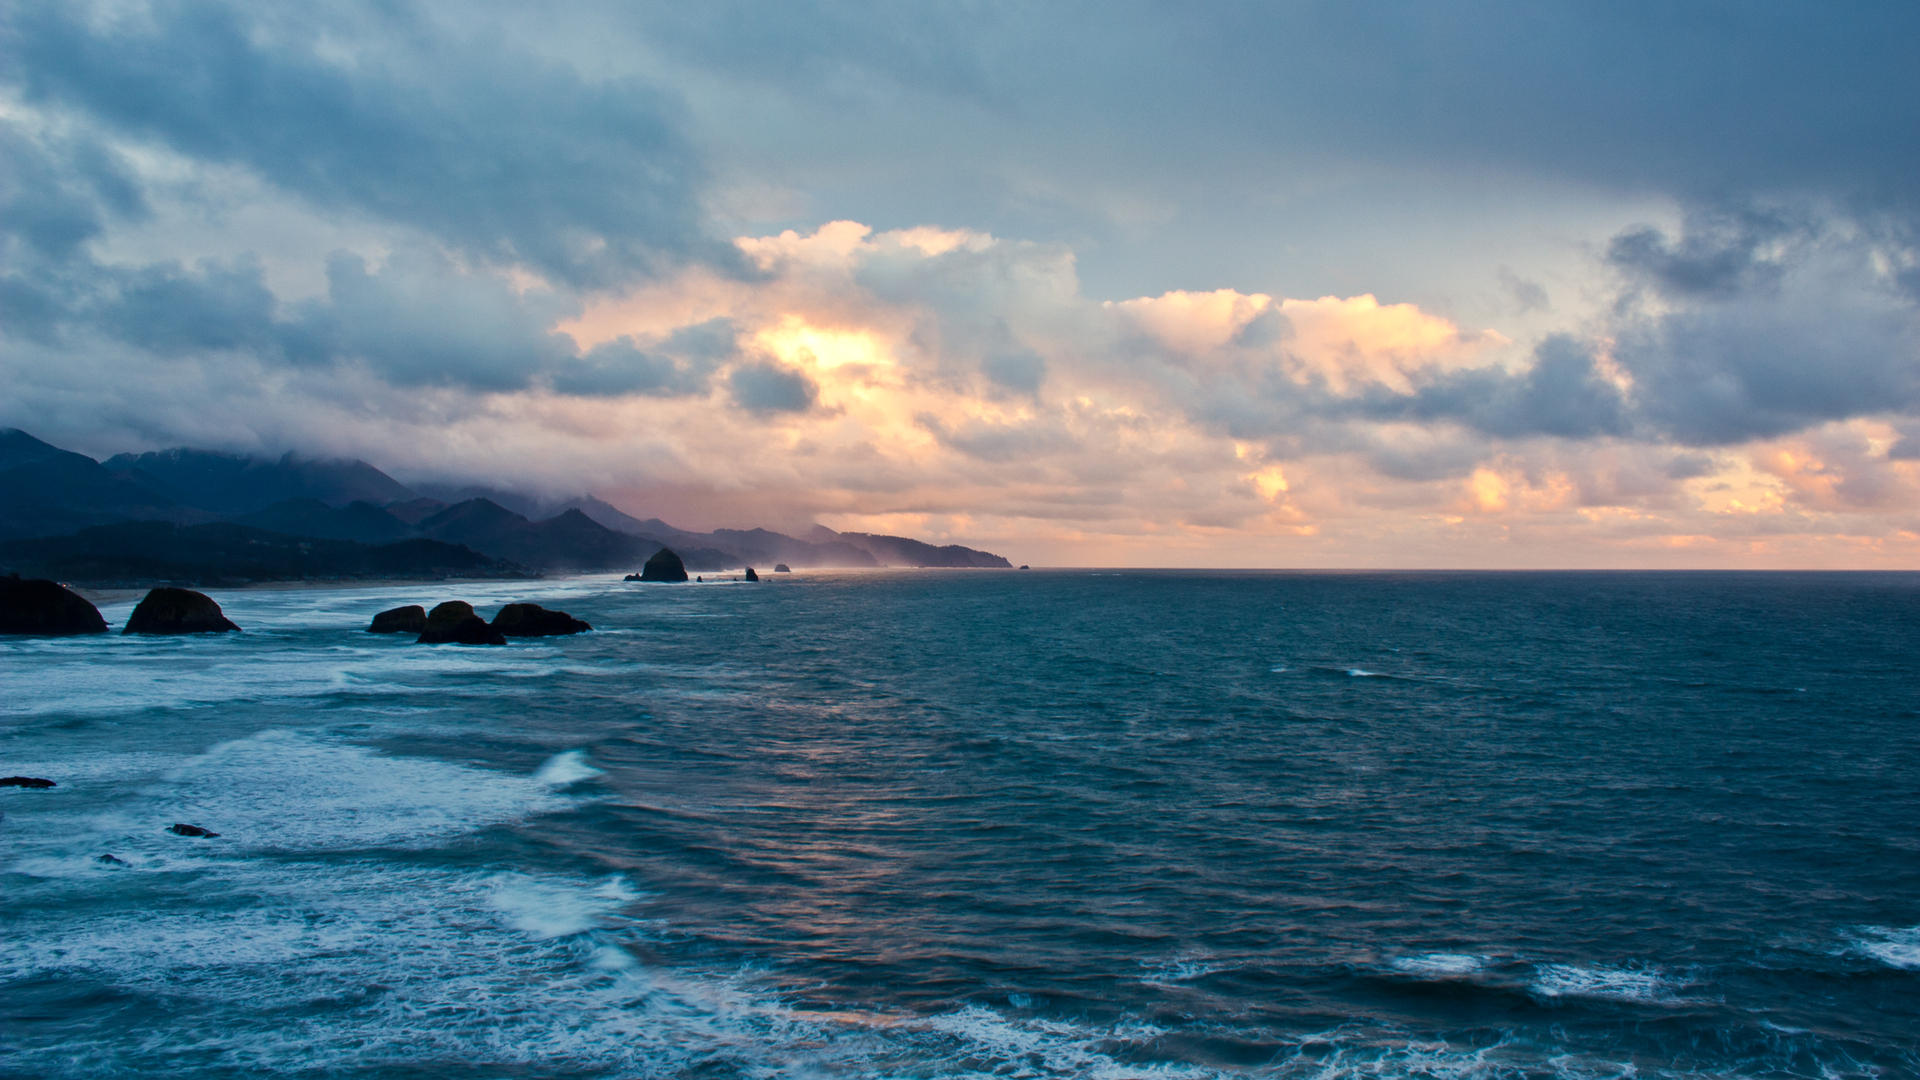 Seascape High Quality Background on Wallpapers Vista